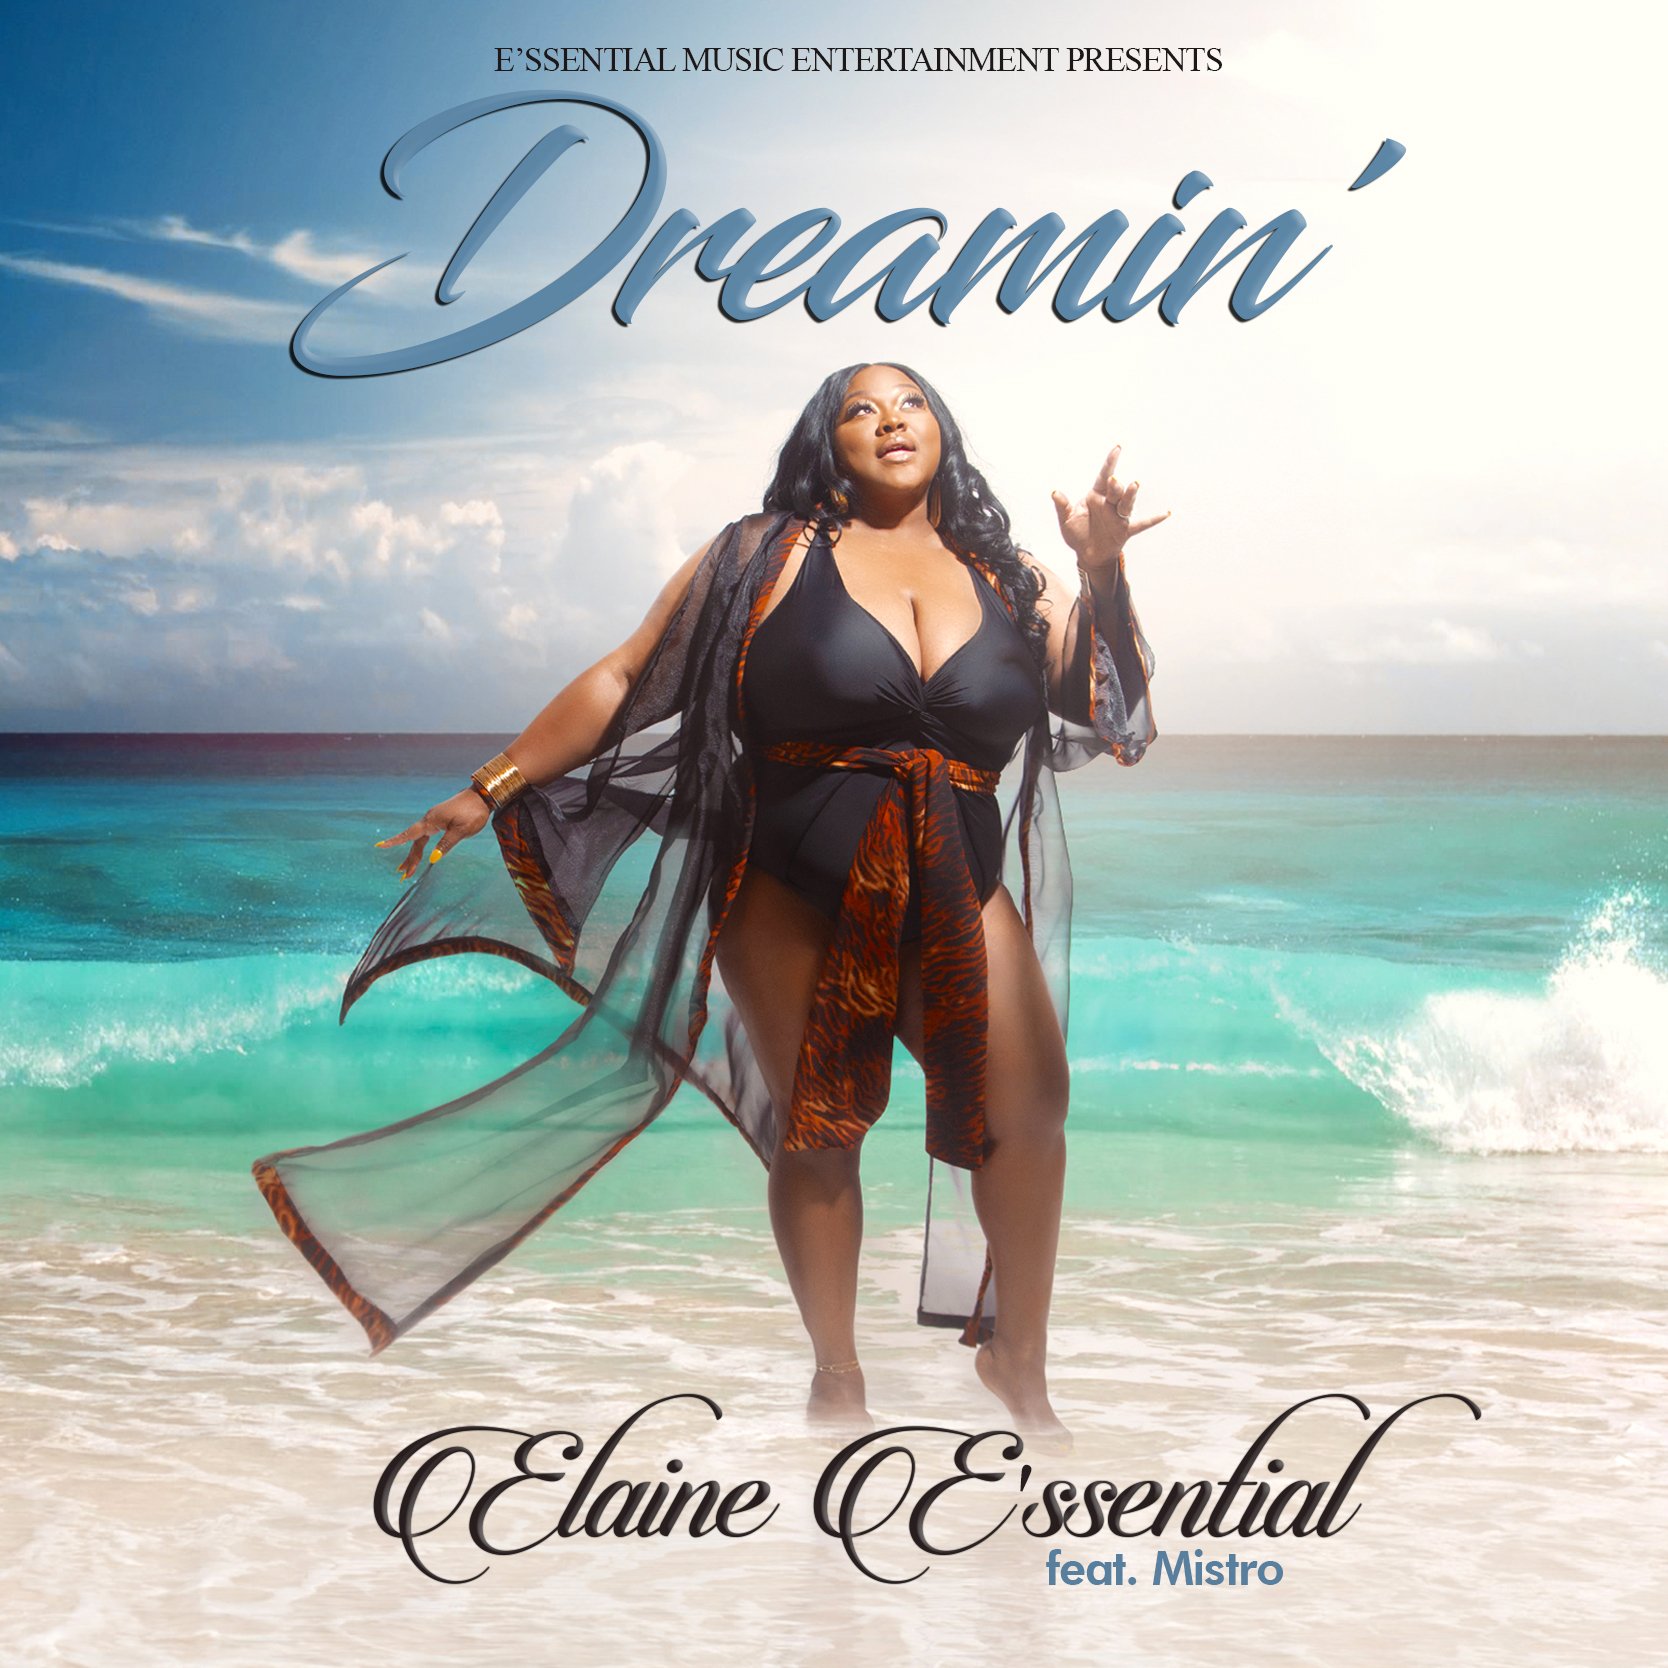 """Embracing Self Love While Attracting The One You Dreamed Of: Talented Soul Empowerment Music Artist Elaine E'ssential Set to Release New Love Ballad, """"Dreamin'"""""""